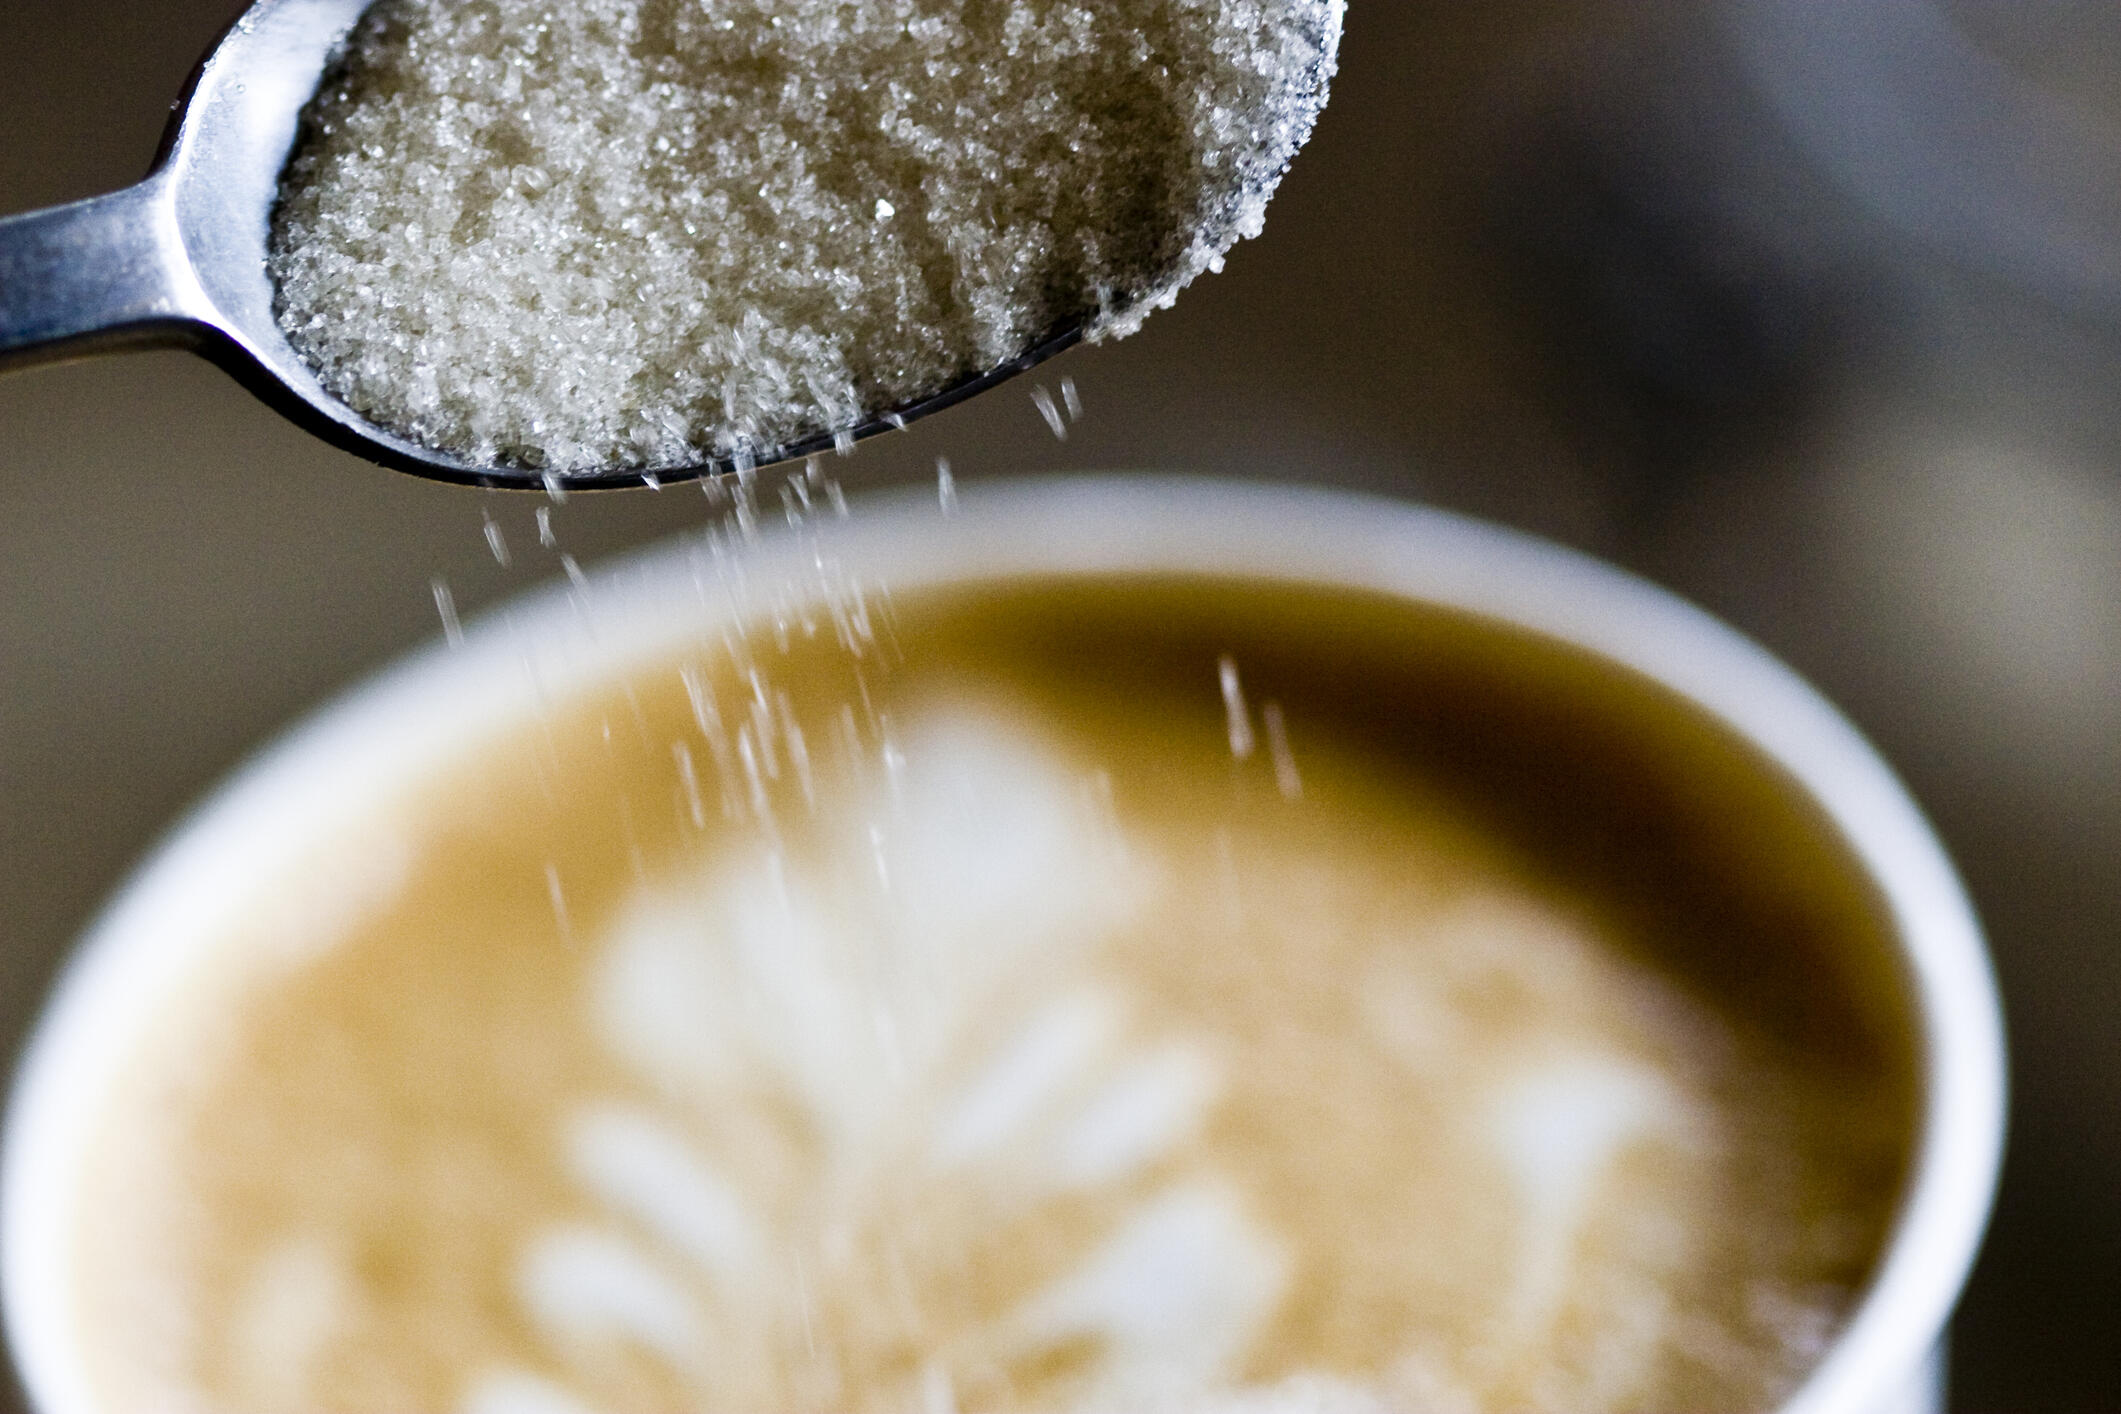 A spoon of sugar being poured into a latte. Latte has a pattern with milk and espresso.